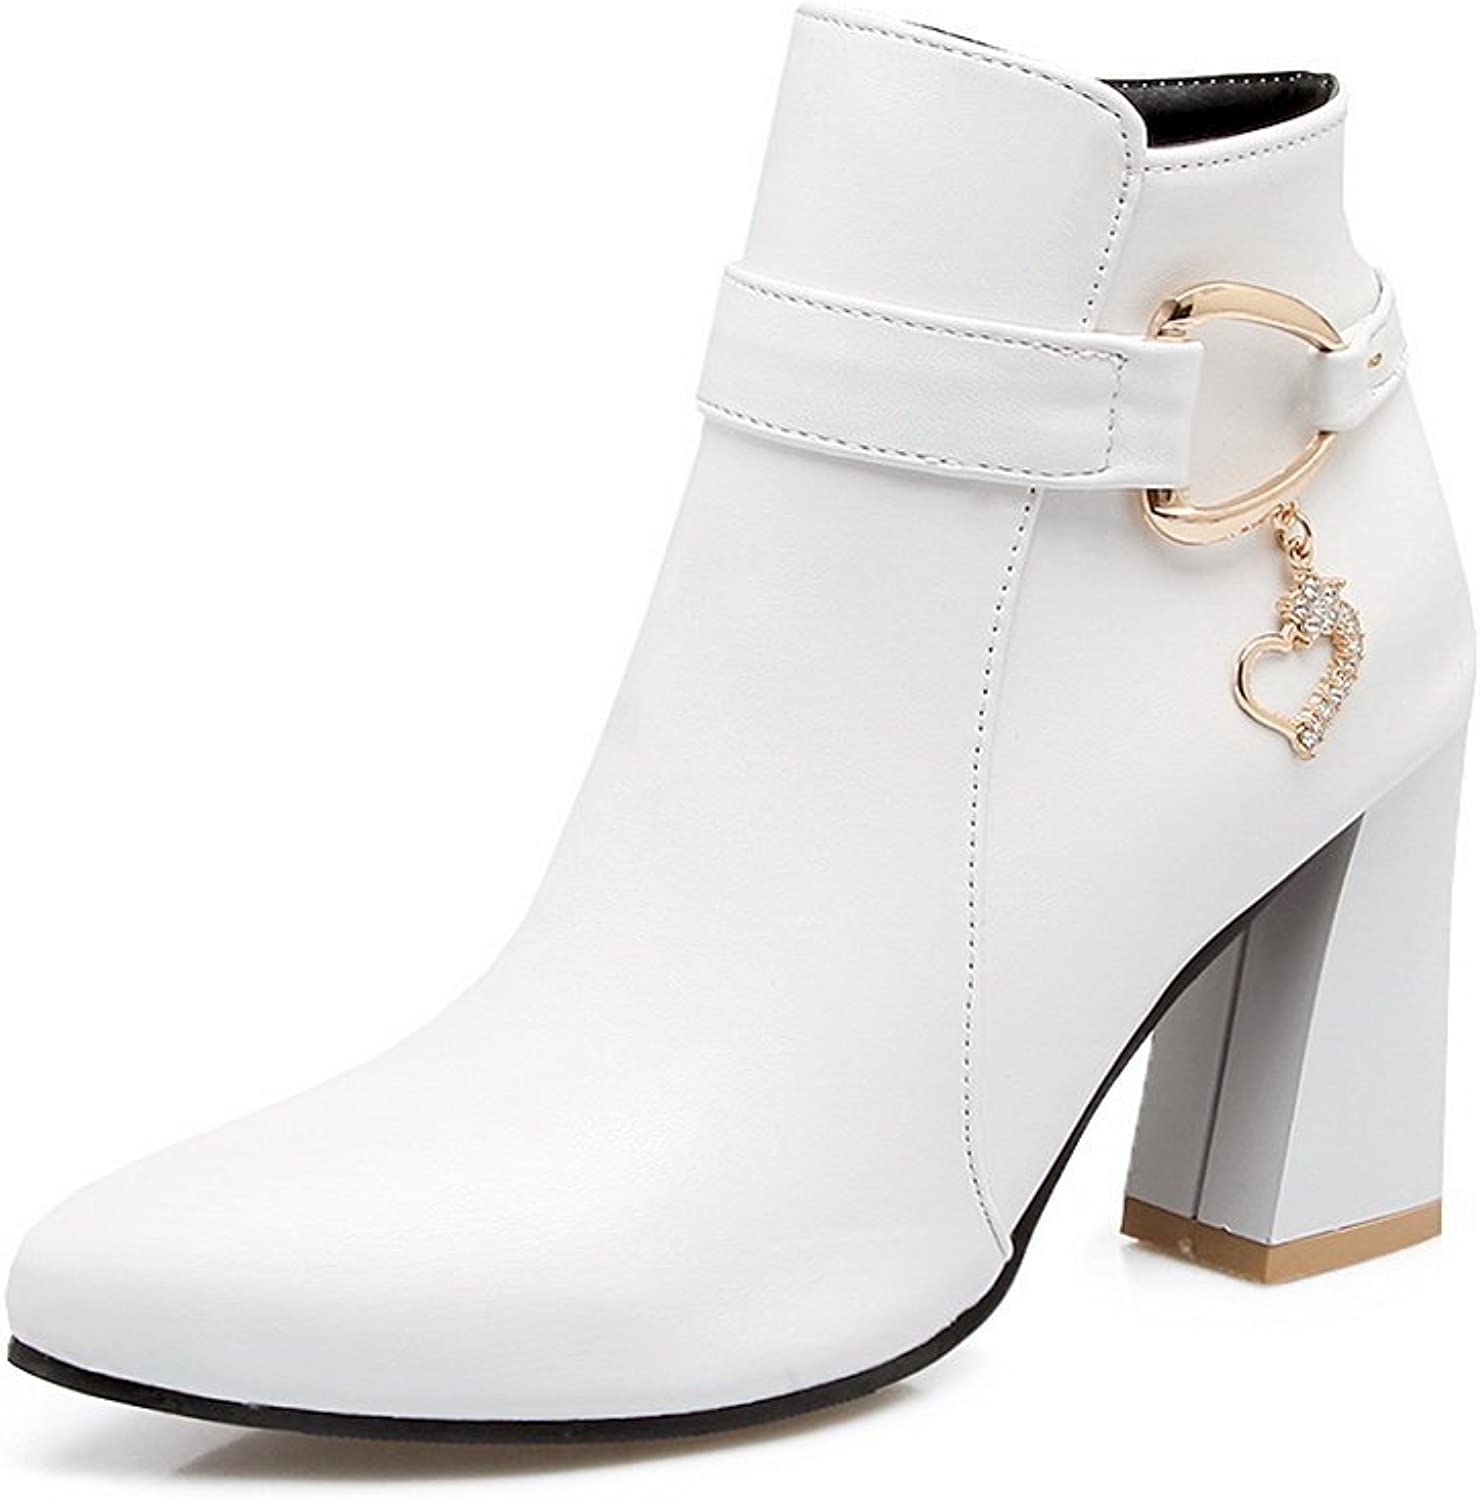 BalaMasa Womens Zipper Solid Mid-Top Pointed-Toe Chunky Heels White Urethane Boots ABL09713 - 8 B(M) US